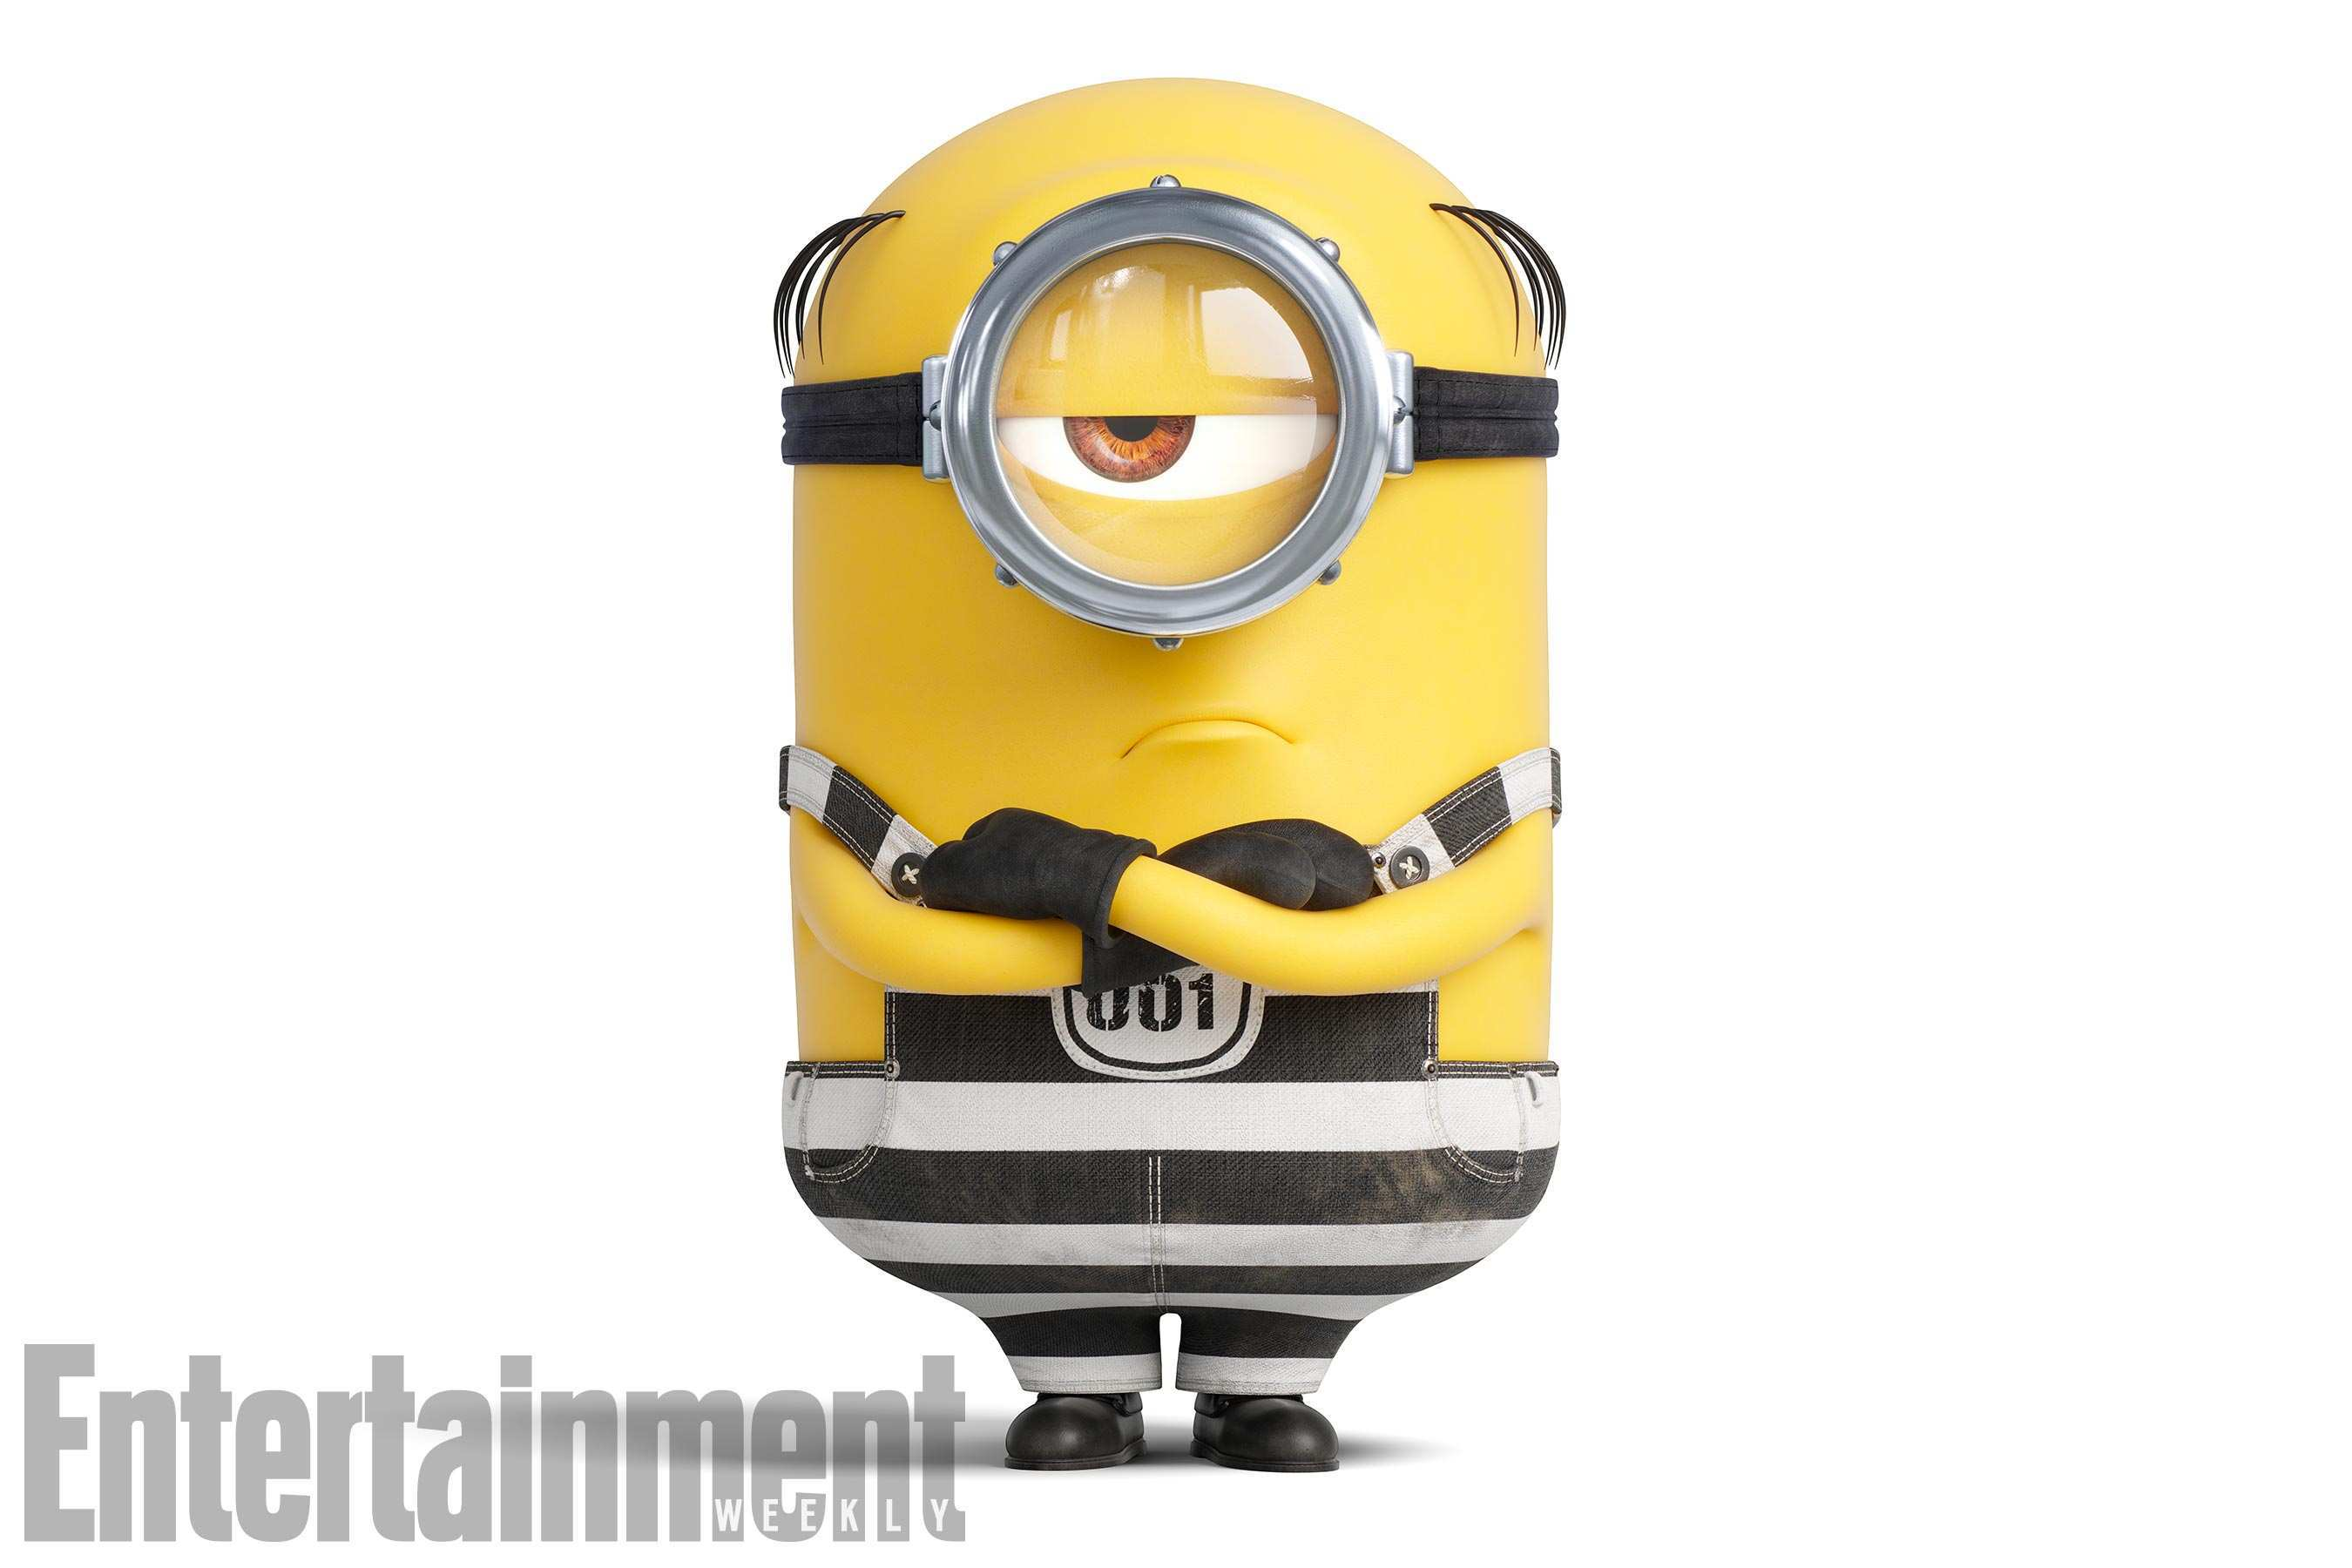 74 Concept of Minion 2 2020 New Concept with Minion 2 2020